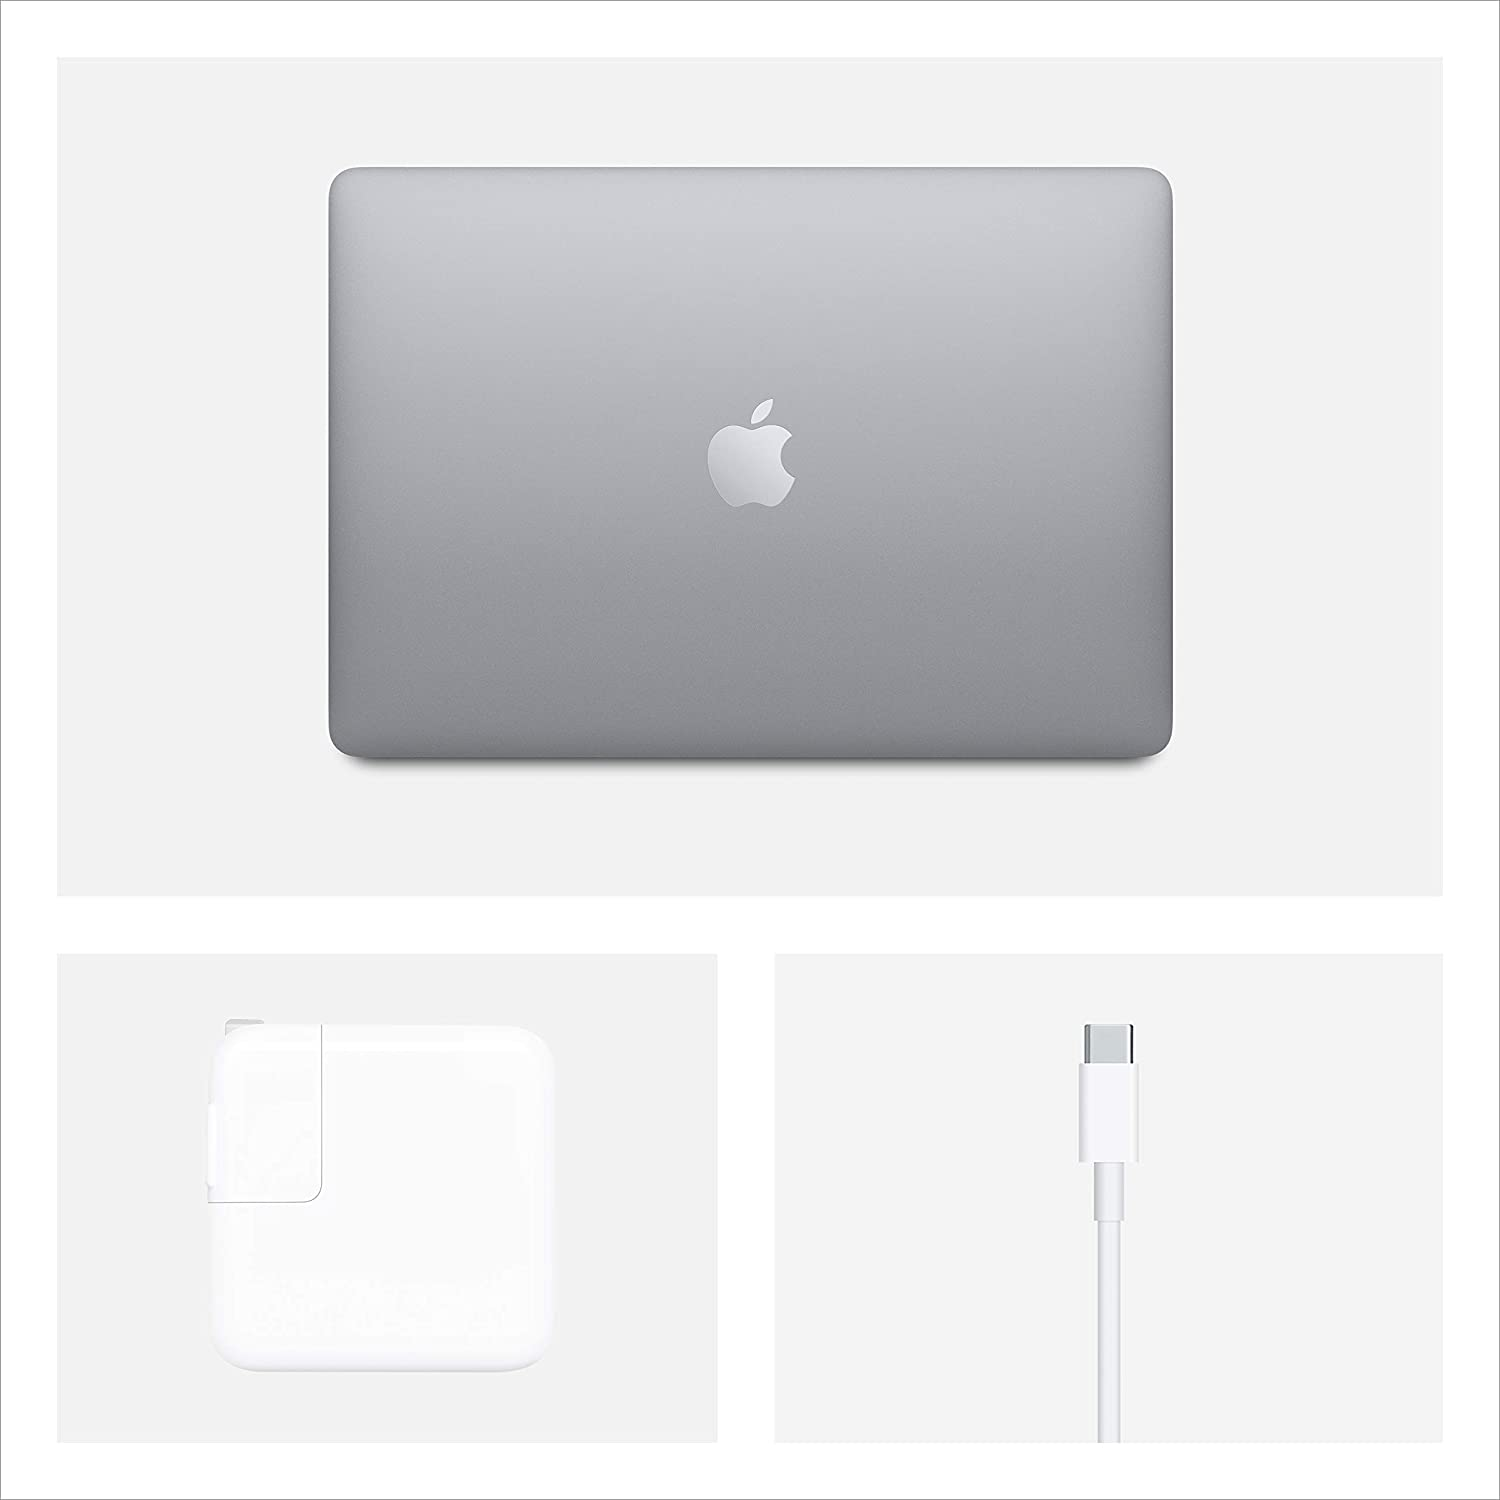 storage/backend/assets/images/product/16155372892fHB-Macbook-air-3.jpg